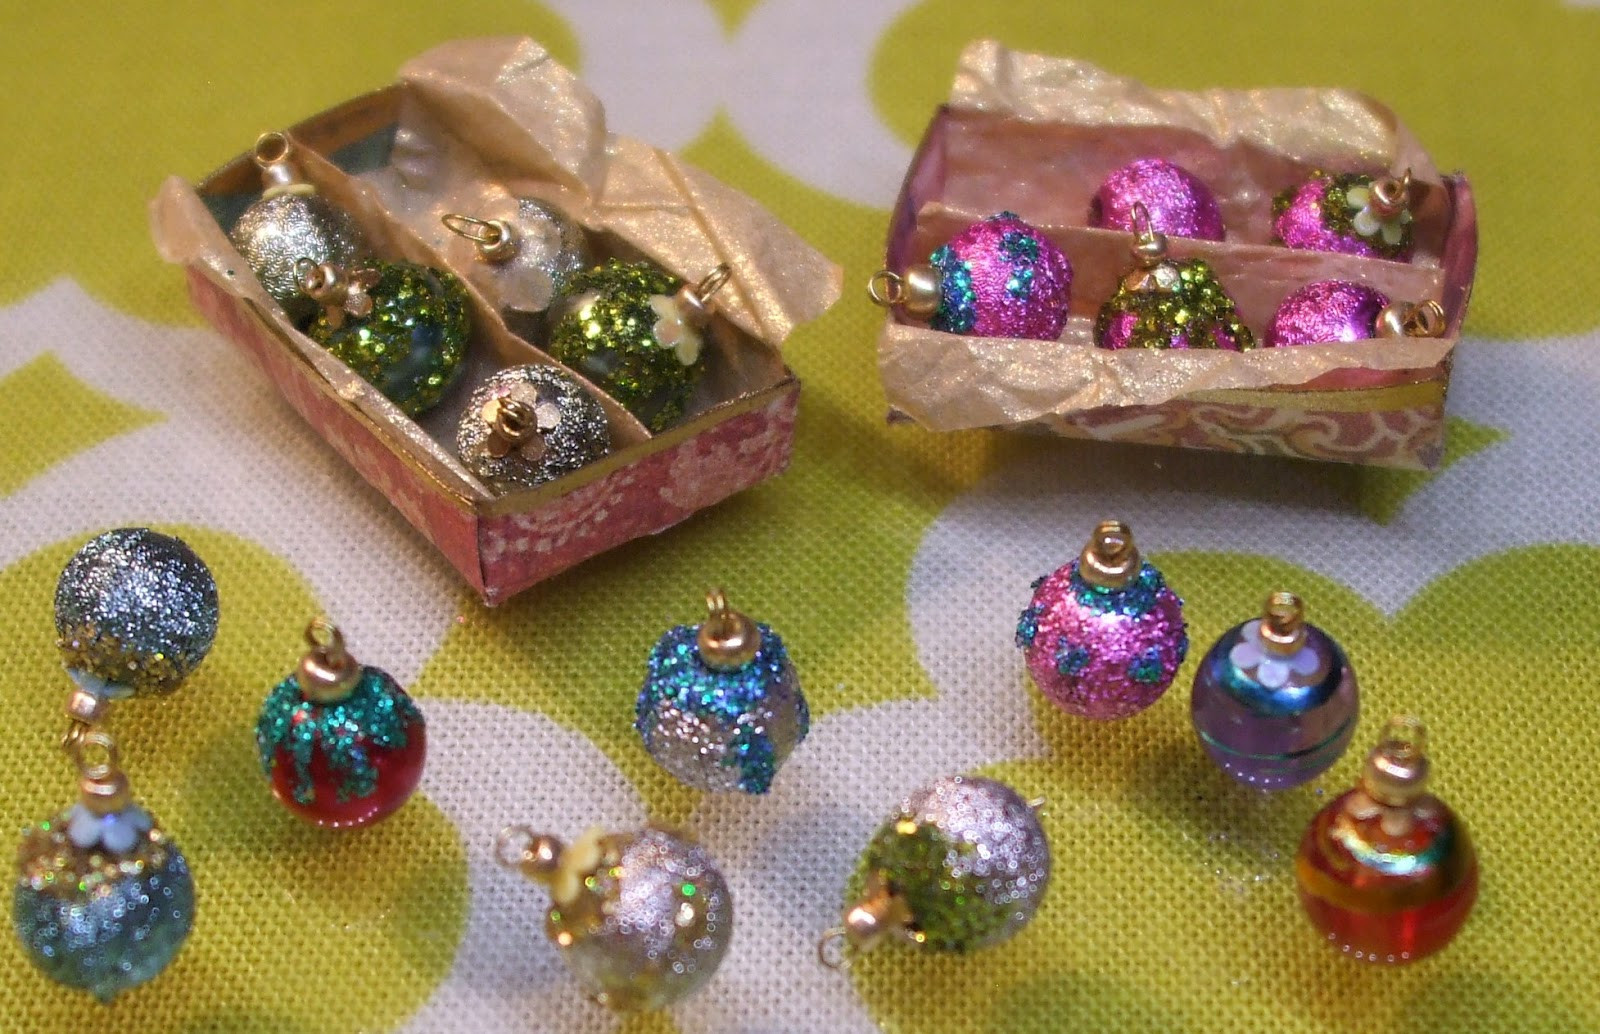 Best Of Kendra S Minis Tutorial Shiny Brite Vintage Style Miniature Christmas Decorations Of Fresh 50 Pictures Miniature Christmas Decorations